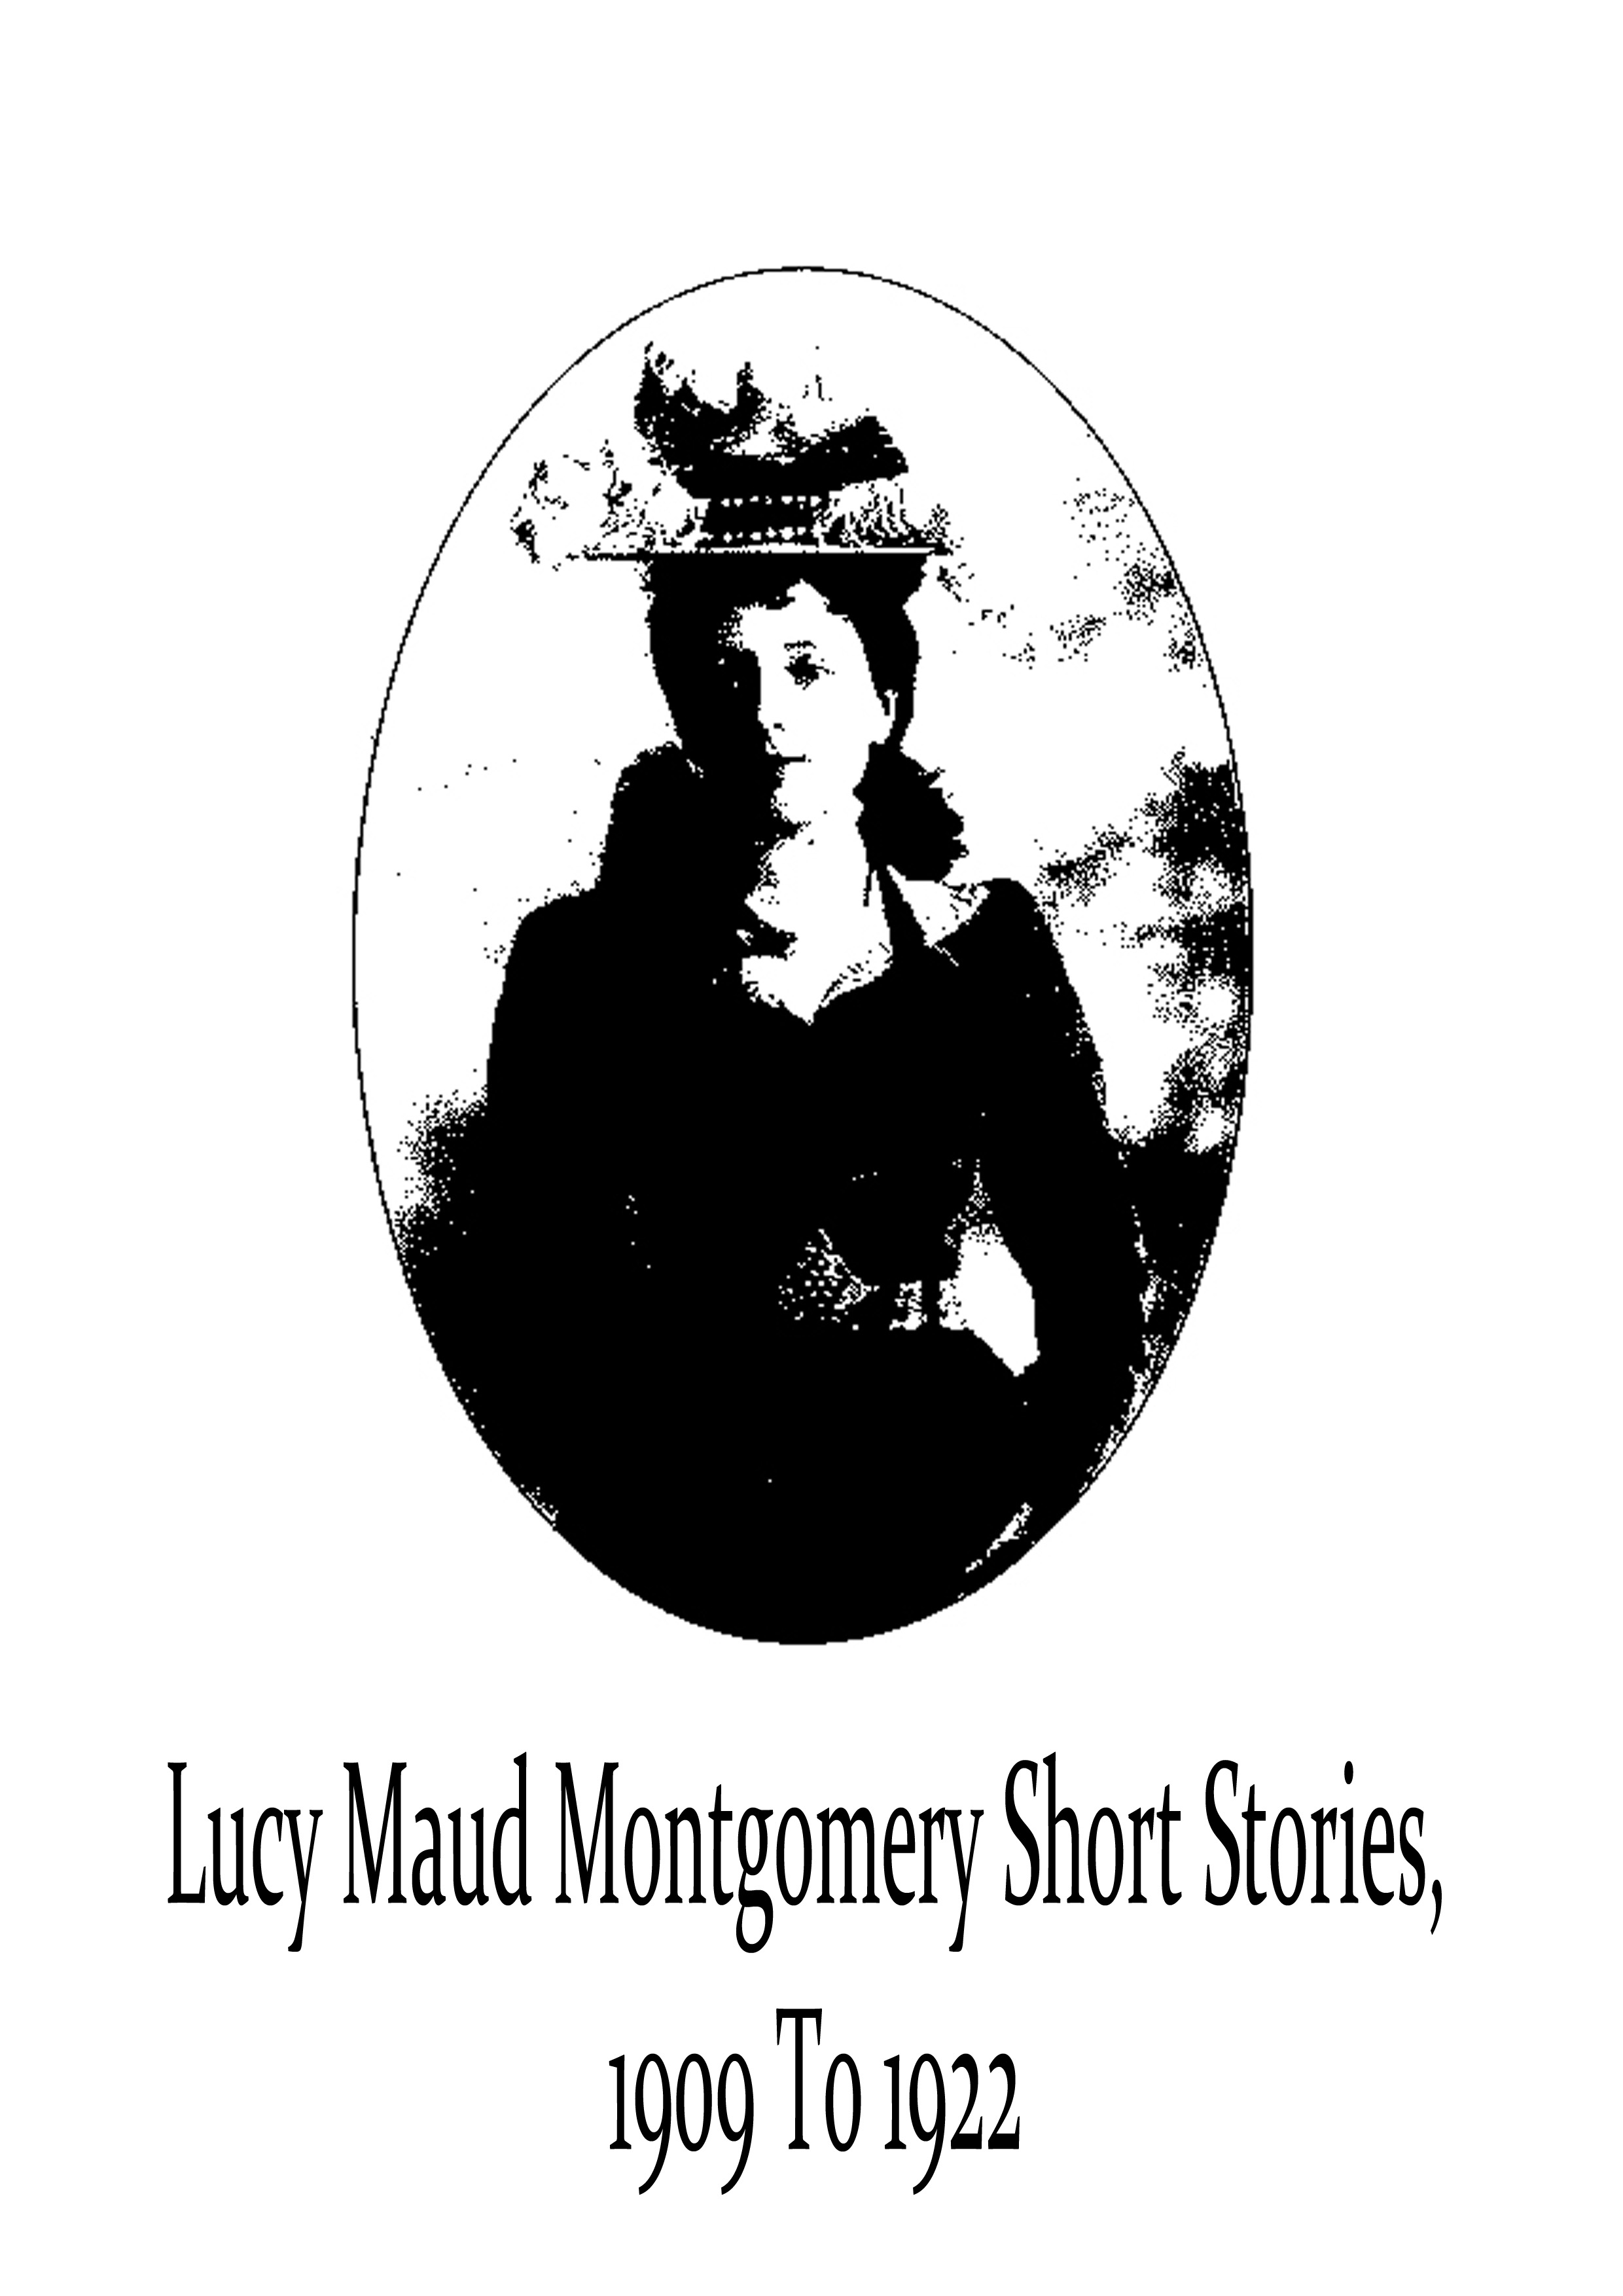 Lucy Maud Montgomery - Lucy Maud Montgomery Short Stories, 1909 To 1922